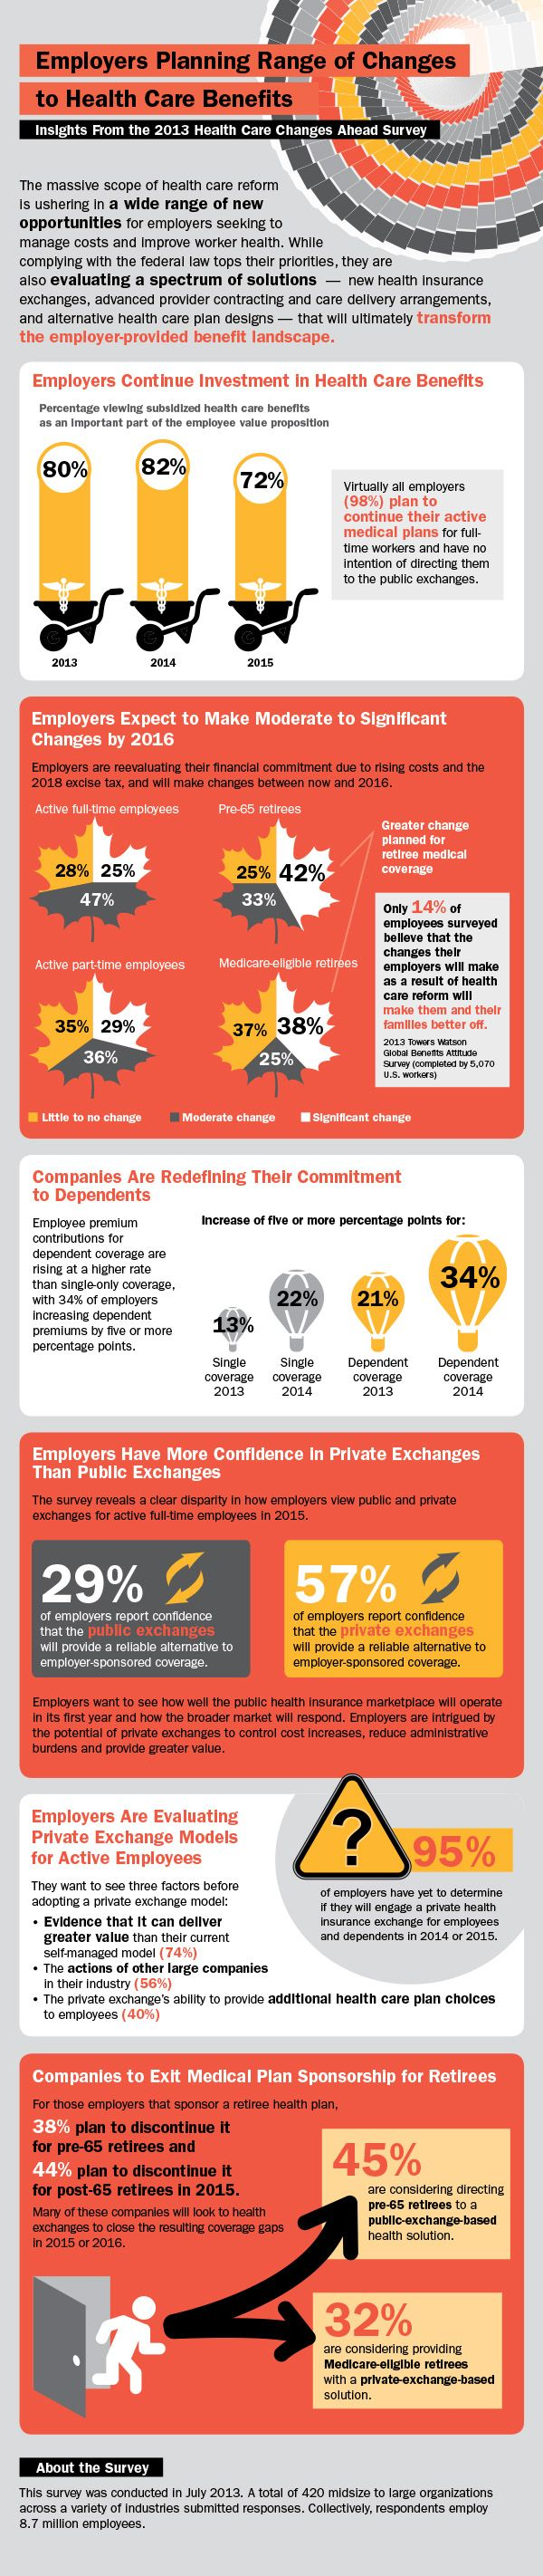 Towers Watson's Health Care Changes Ahead Survey of 420 organizations reveals employers plan to make moderate to significant changes to health benefit programs by 2016. For more information, visit: http://www.towerswatson.com/en/Insights/IC-Types/Survey-Research-Results/2013/09/2013-Health-Care-Changes-Ahead-Survey